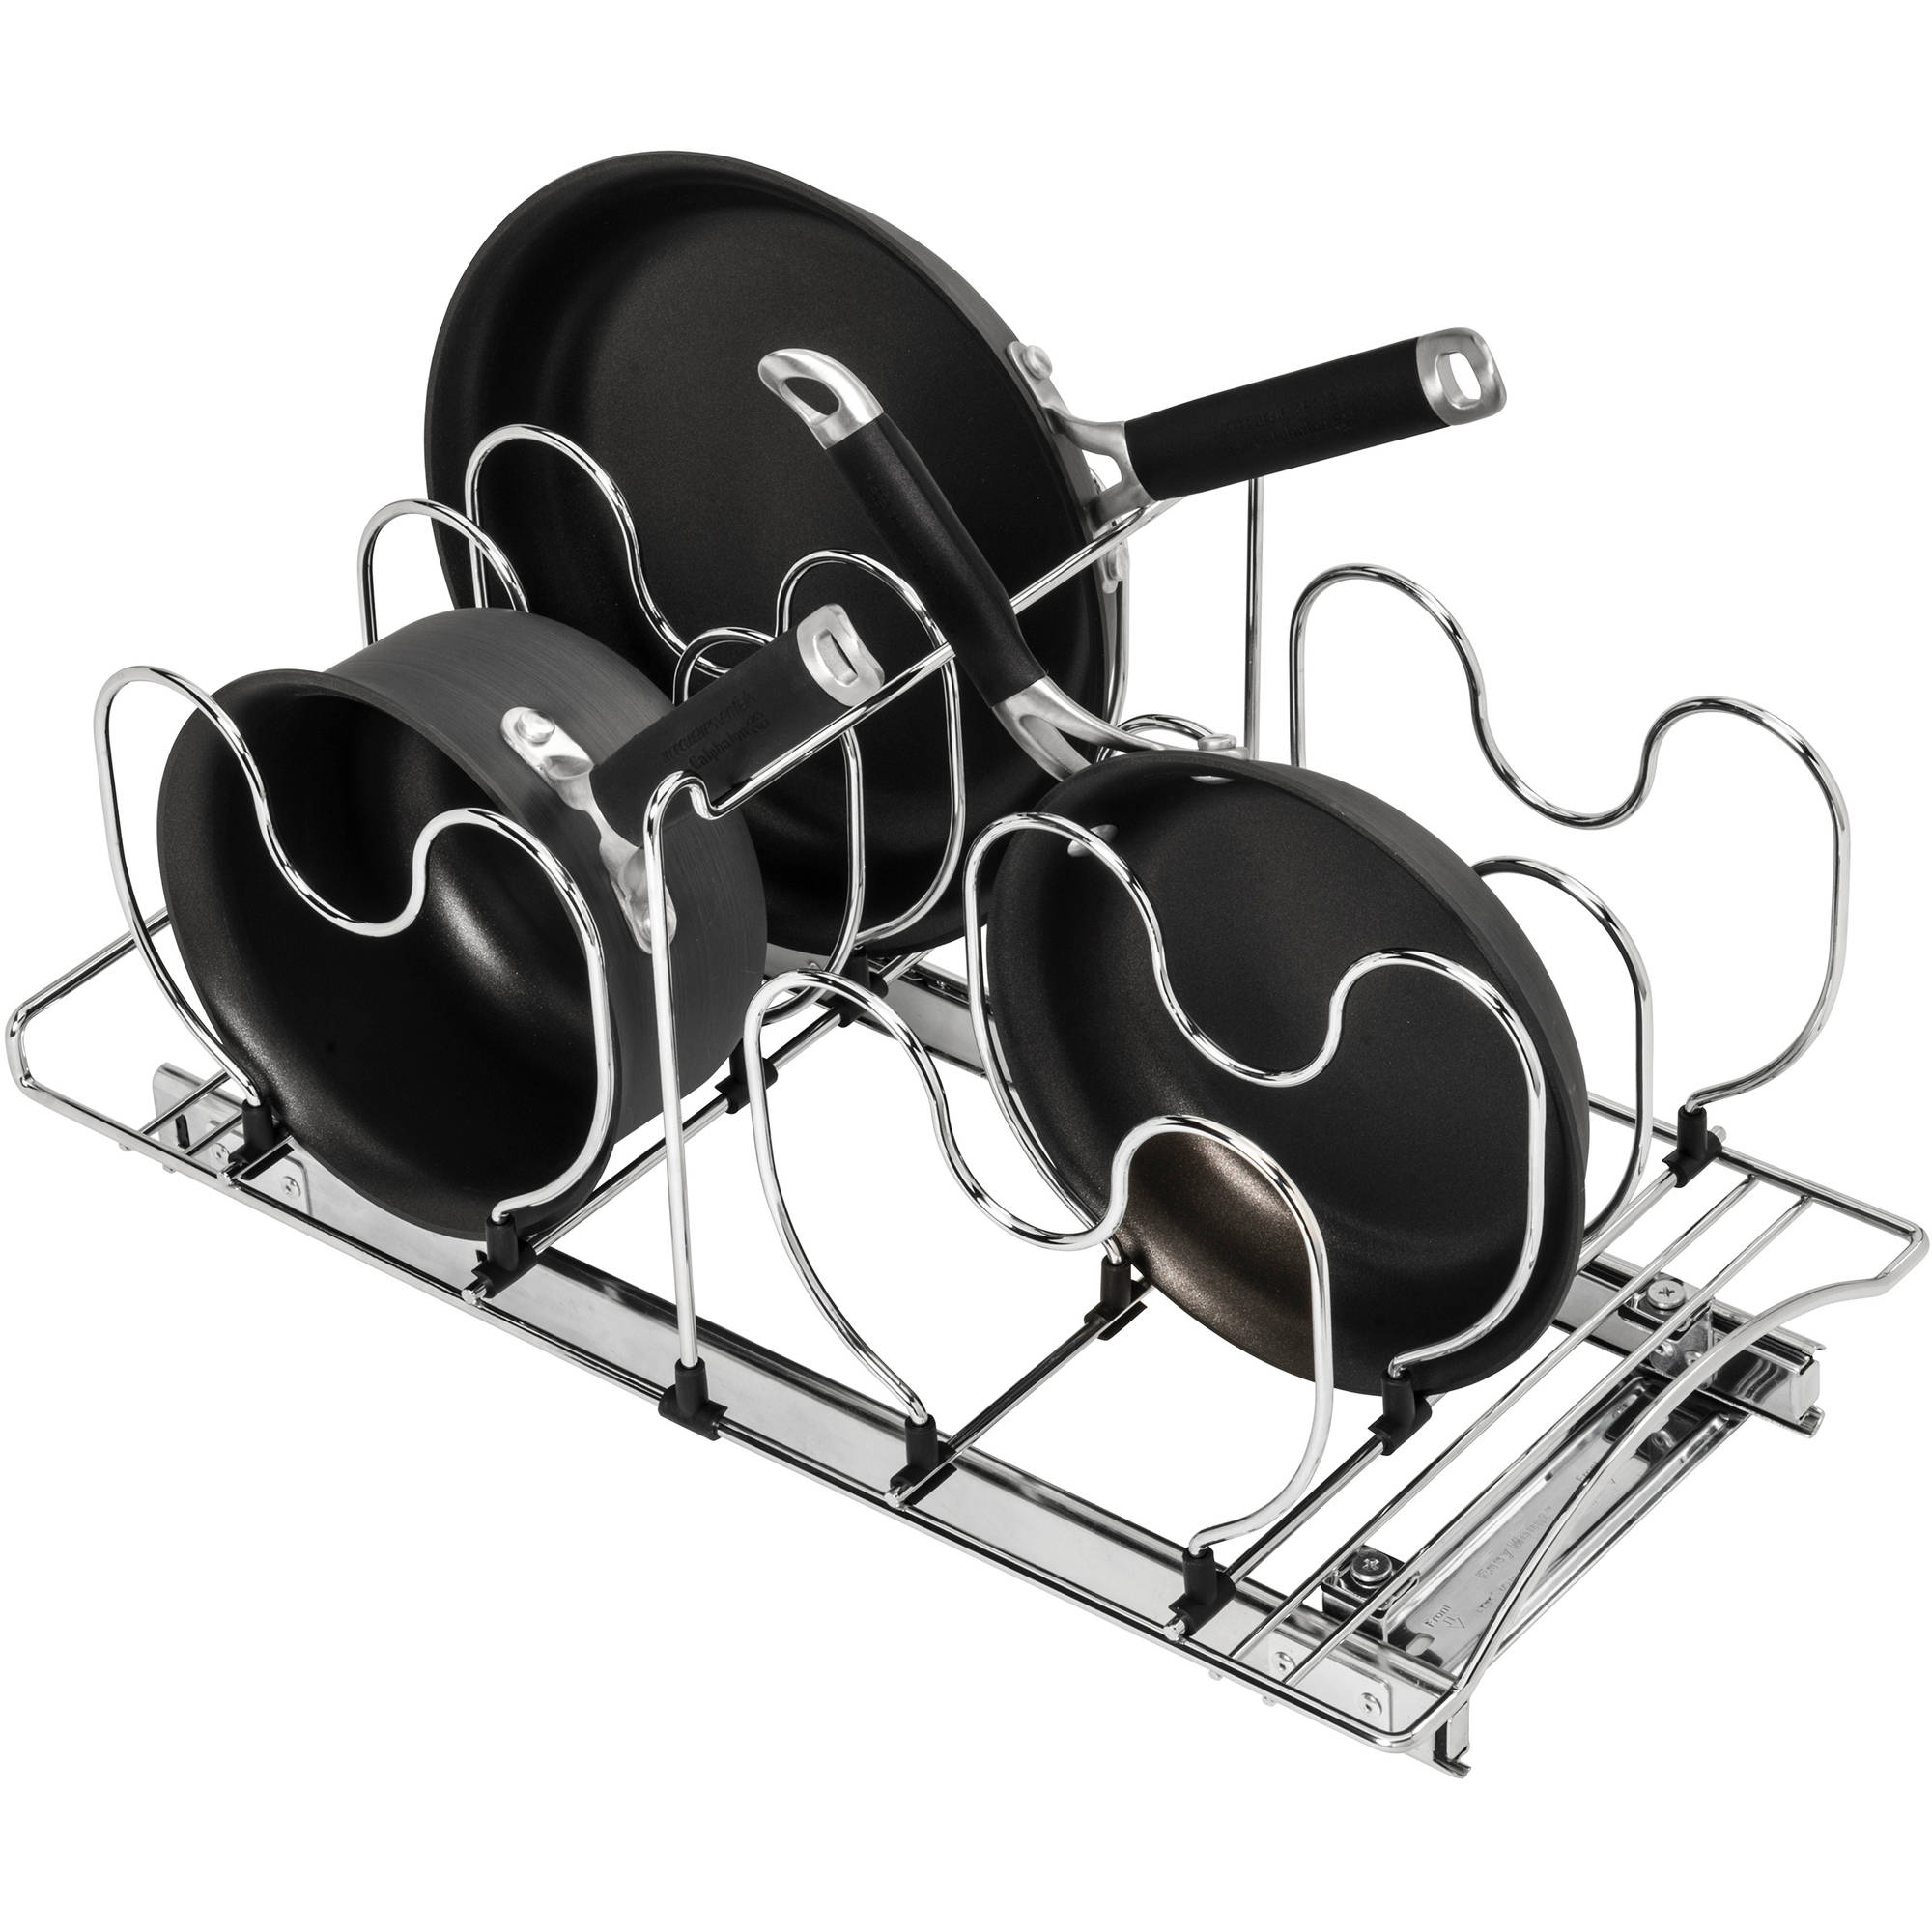 "Lynk Professional Roll Out Cookware Organizer Pull Out Under Cabinet Sliding Rack, 11""W x 21""D, Chrome"